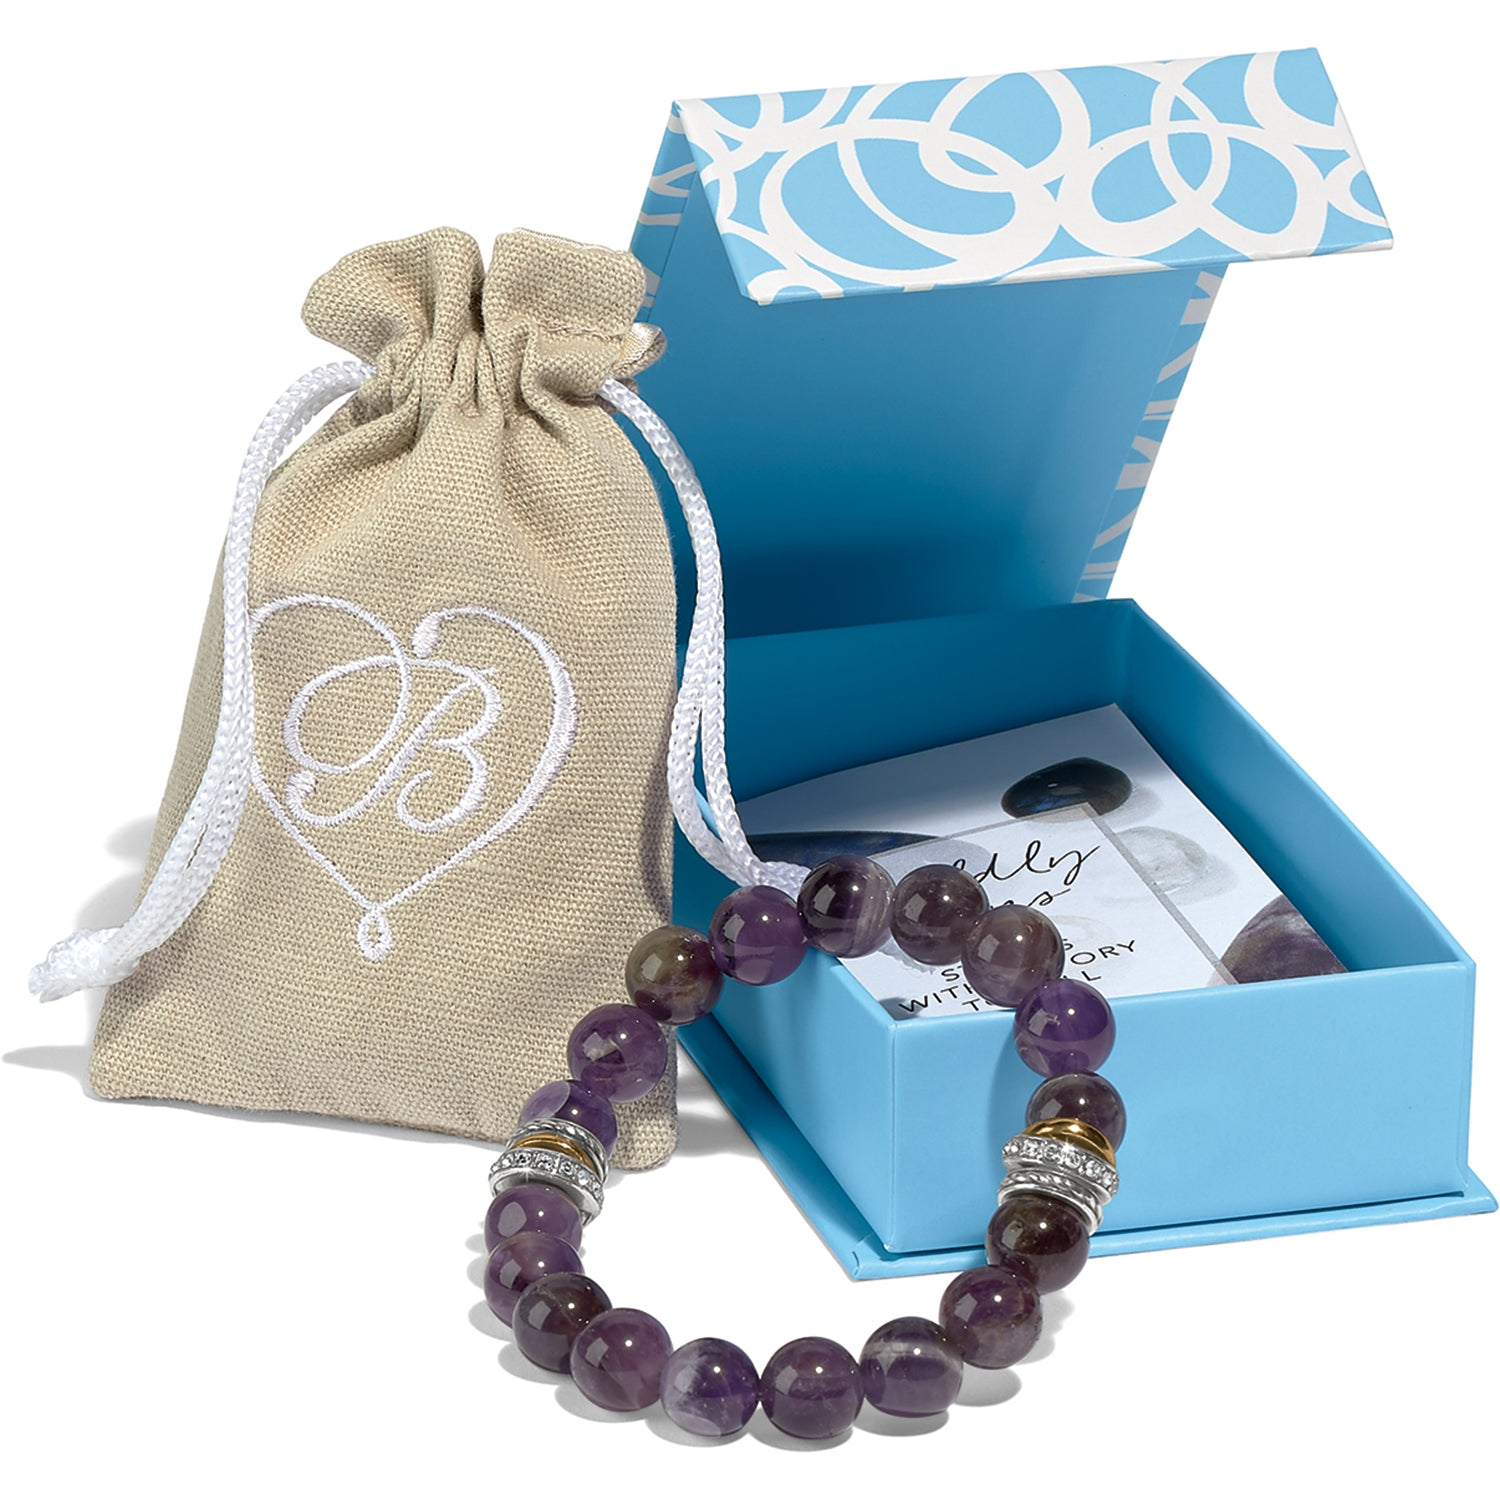 Brighton Jewelry Neptune's Rings Amethyst Stretch Bracelet. Neptune's Rings gets a new twist with this stretch bracelet adorned with stacked rings. In semi-precious amethyst, it symbolizes spiritual contentment.